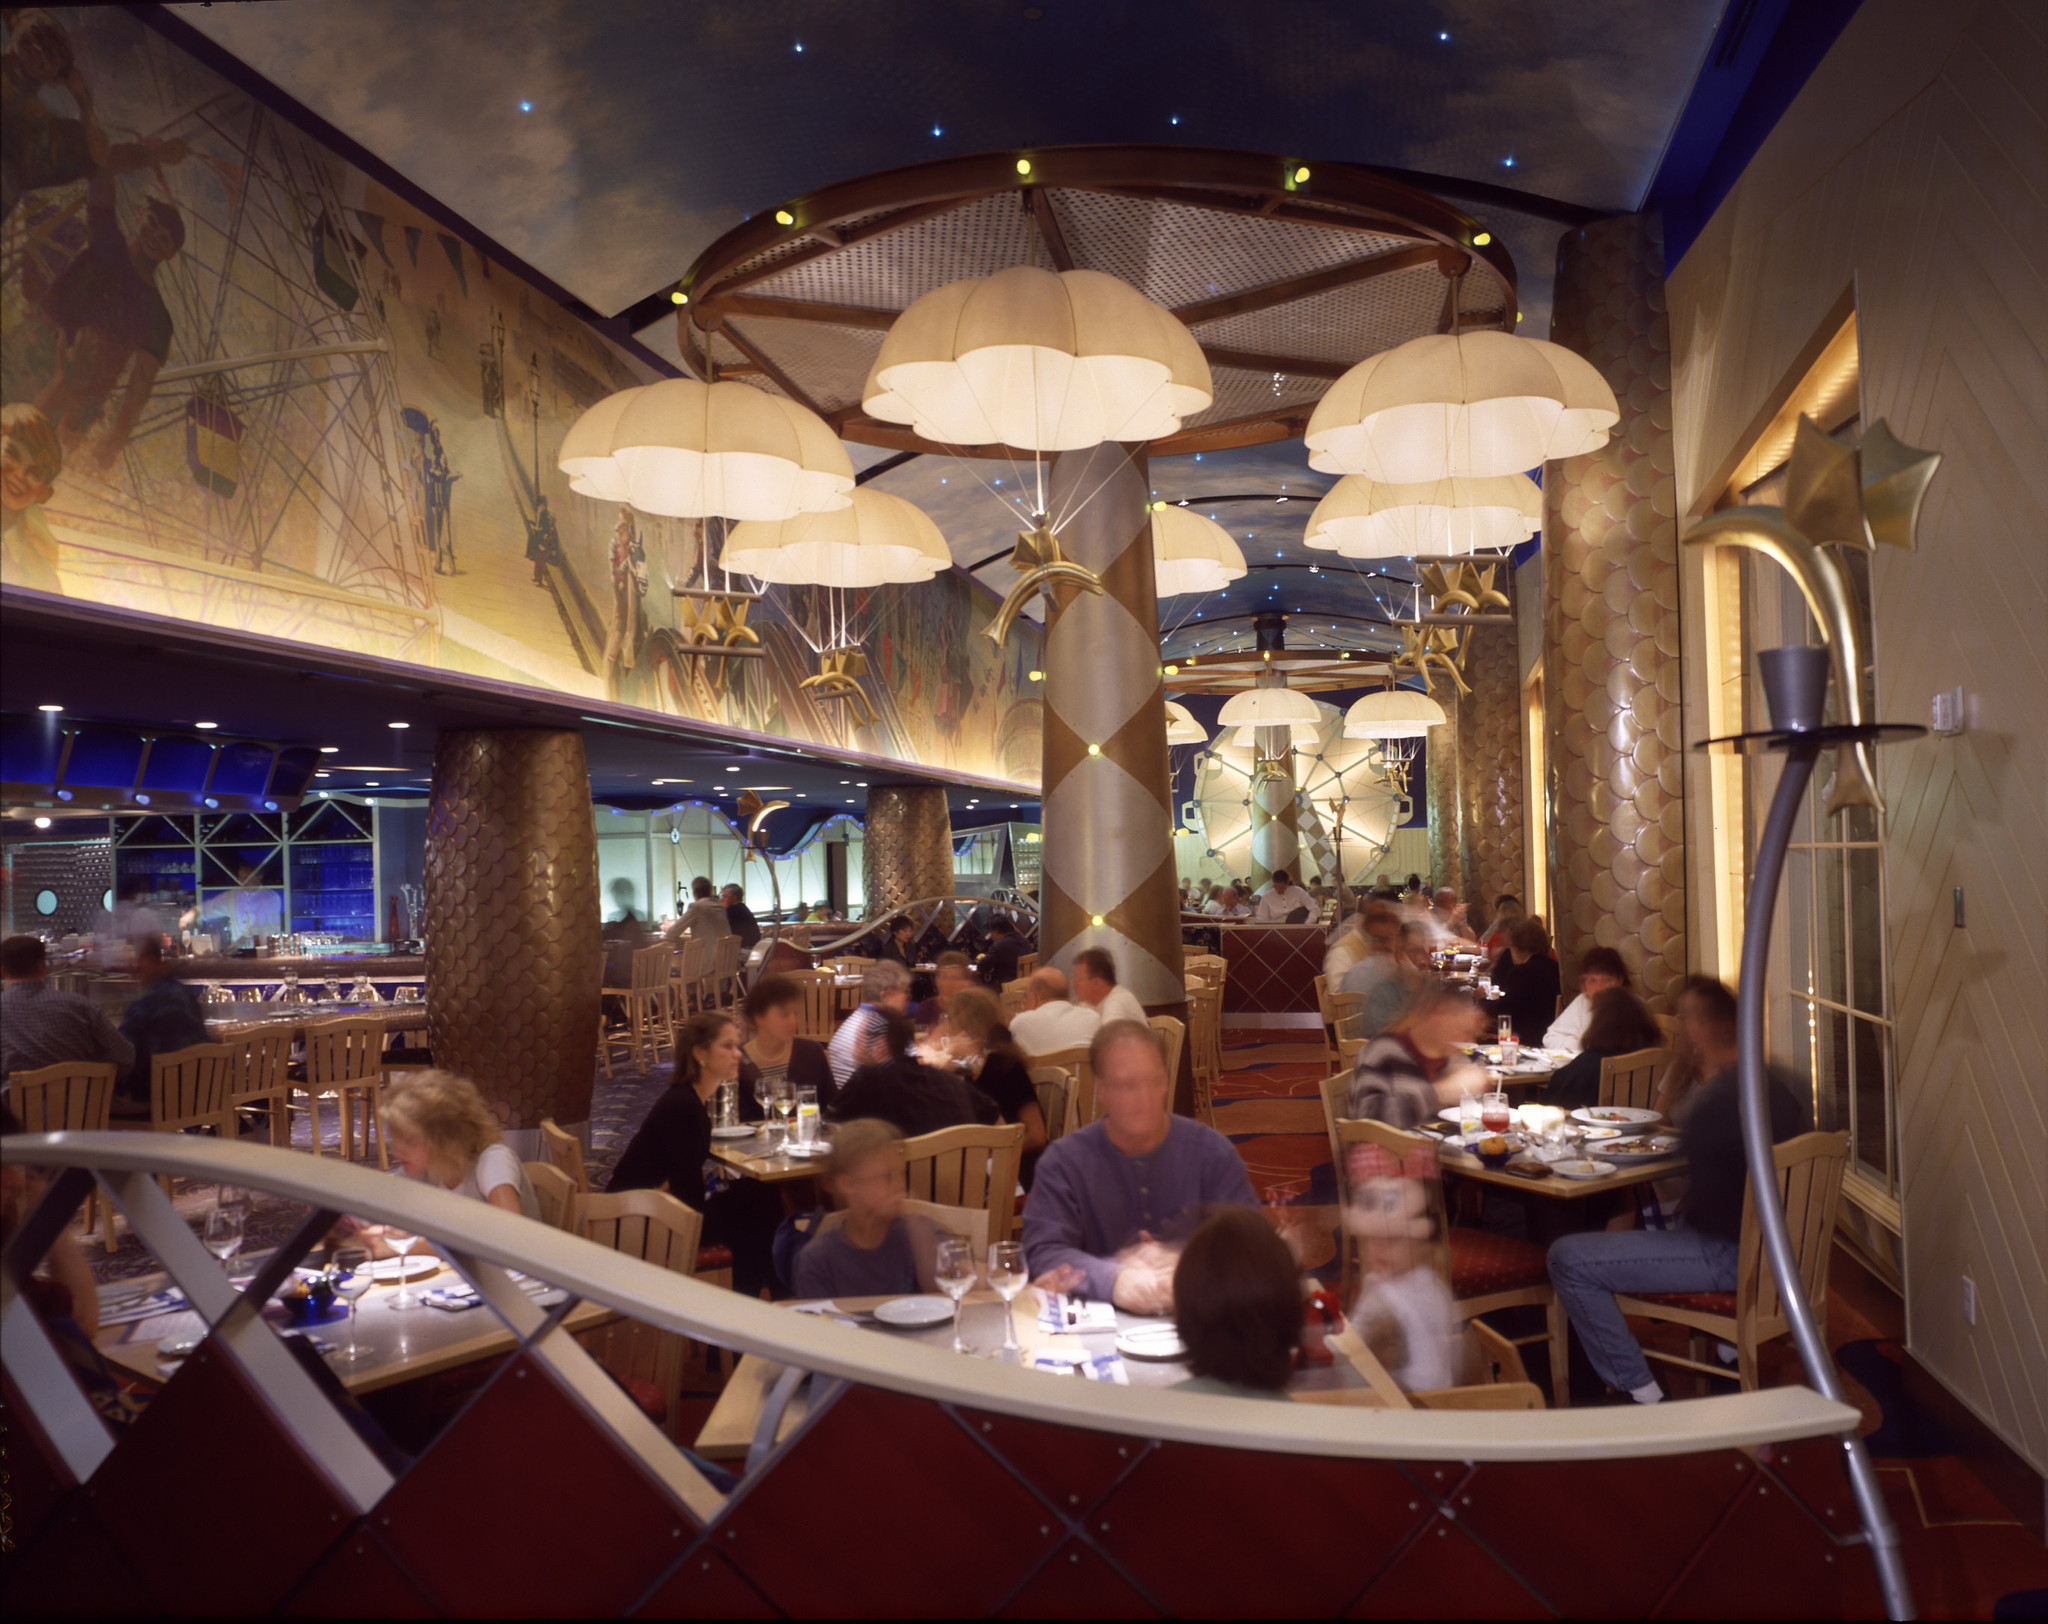 Disney Worlds Flying Fish Cafe To Close For Renovation